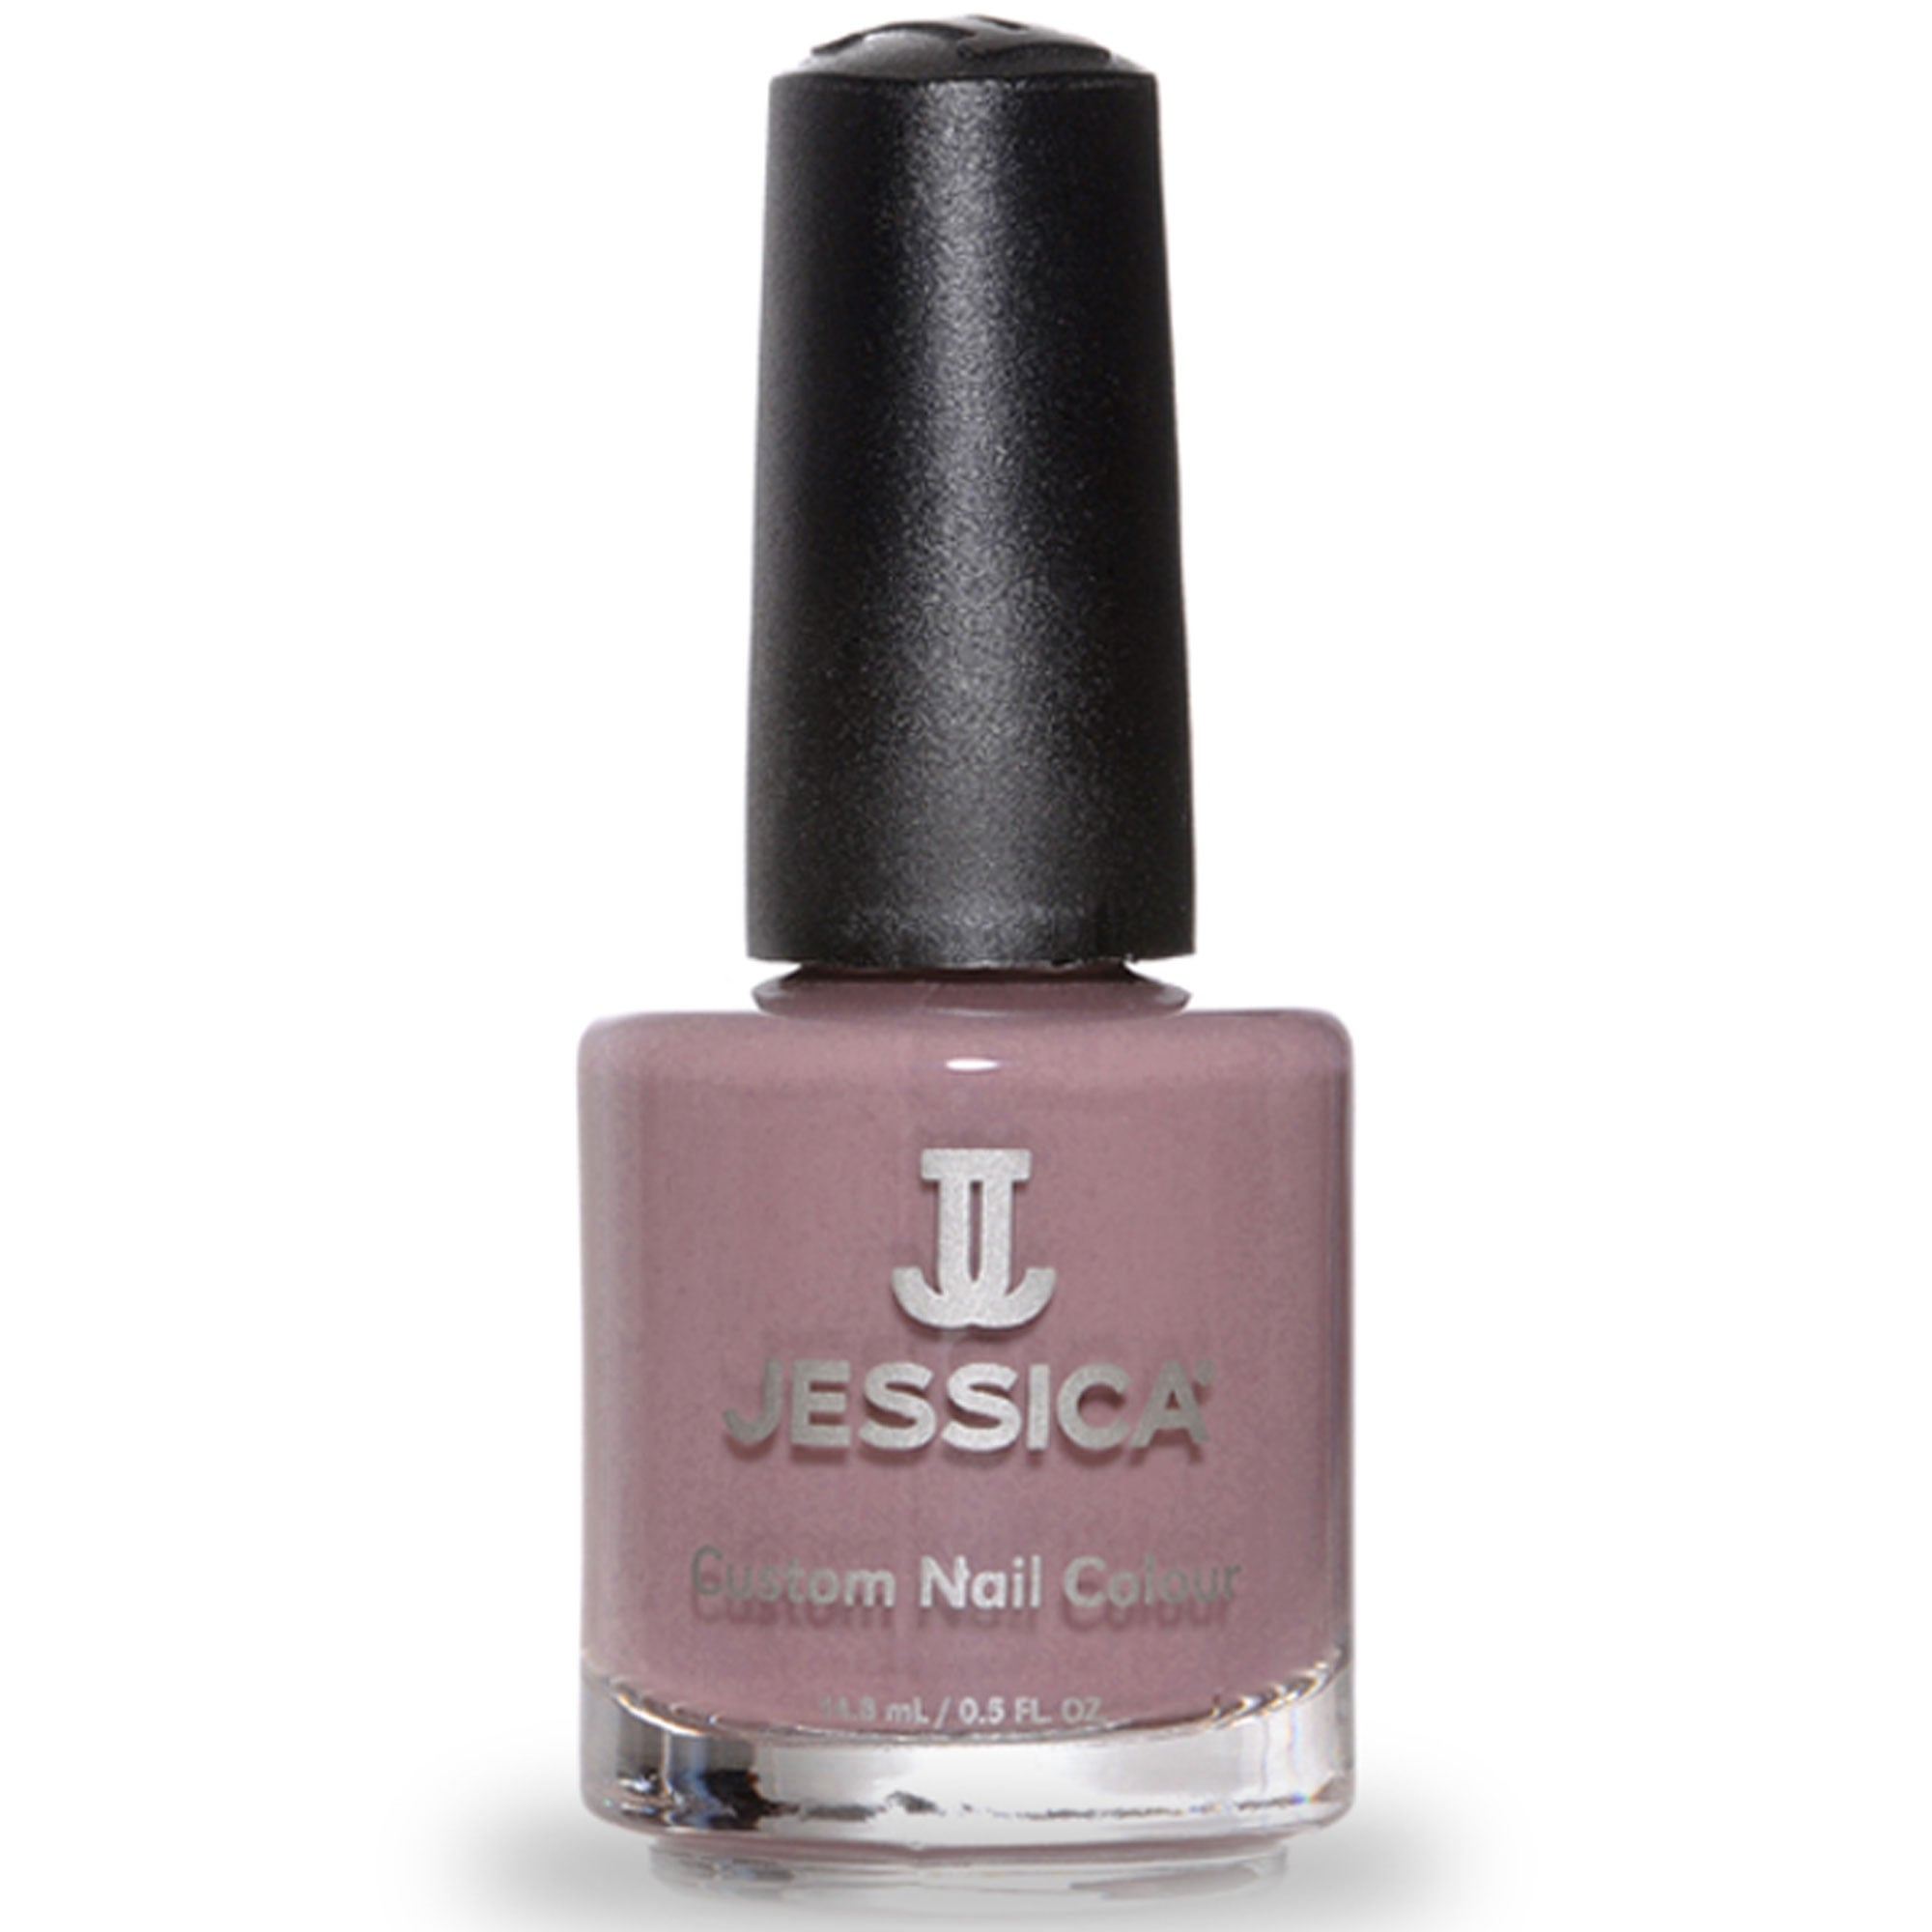 Jessica Intrigue Nail Polish is available online at Nail Polish Direct